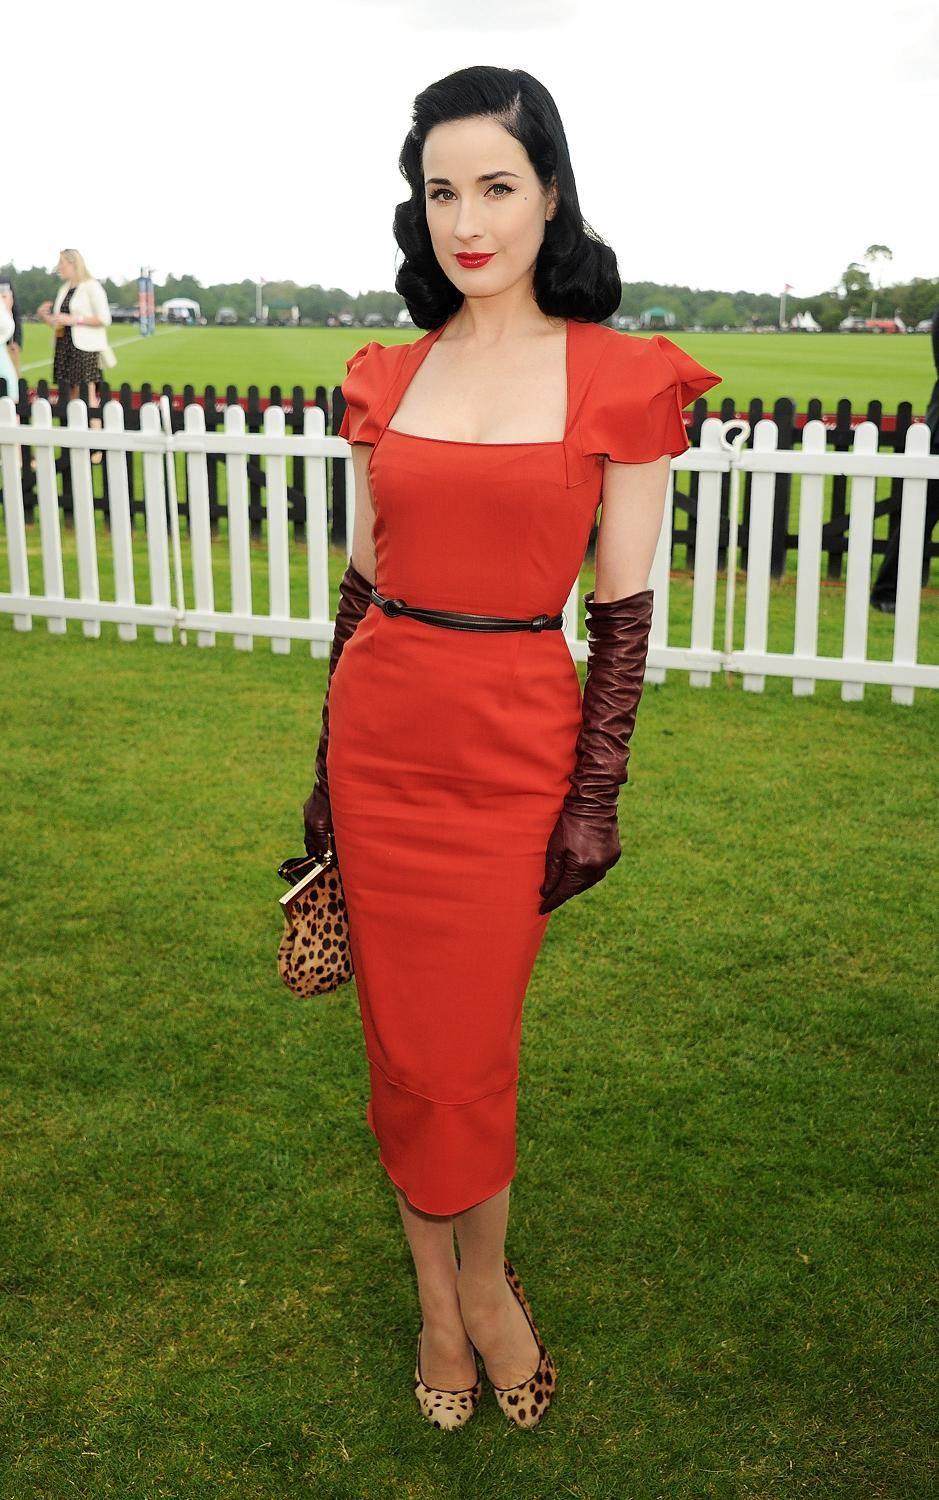 Red Pin Up Dress - Cocktail Dresses 2016